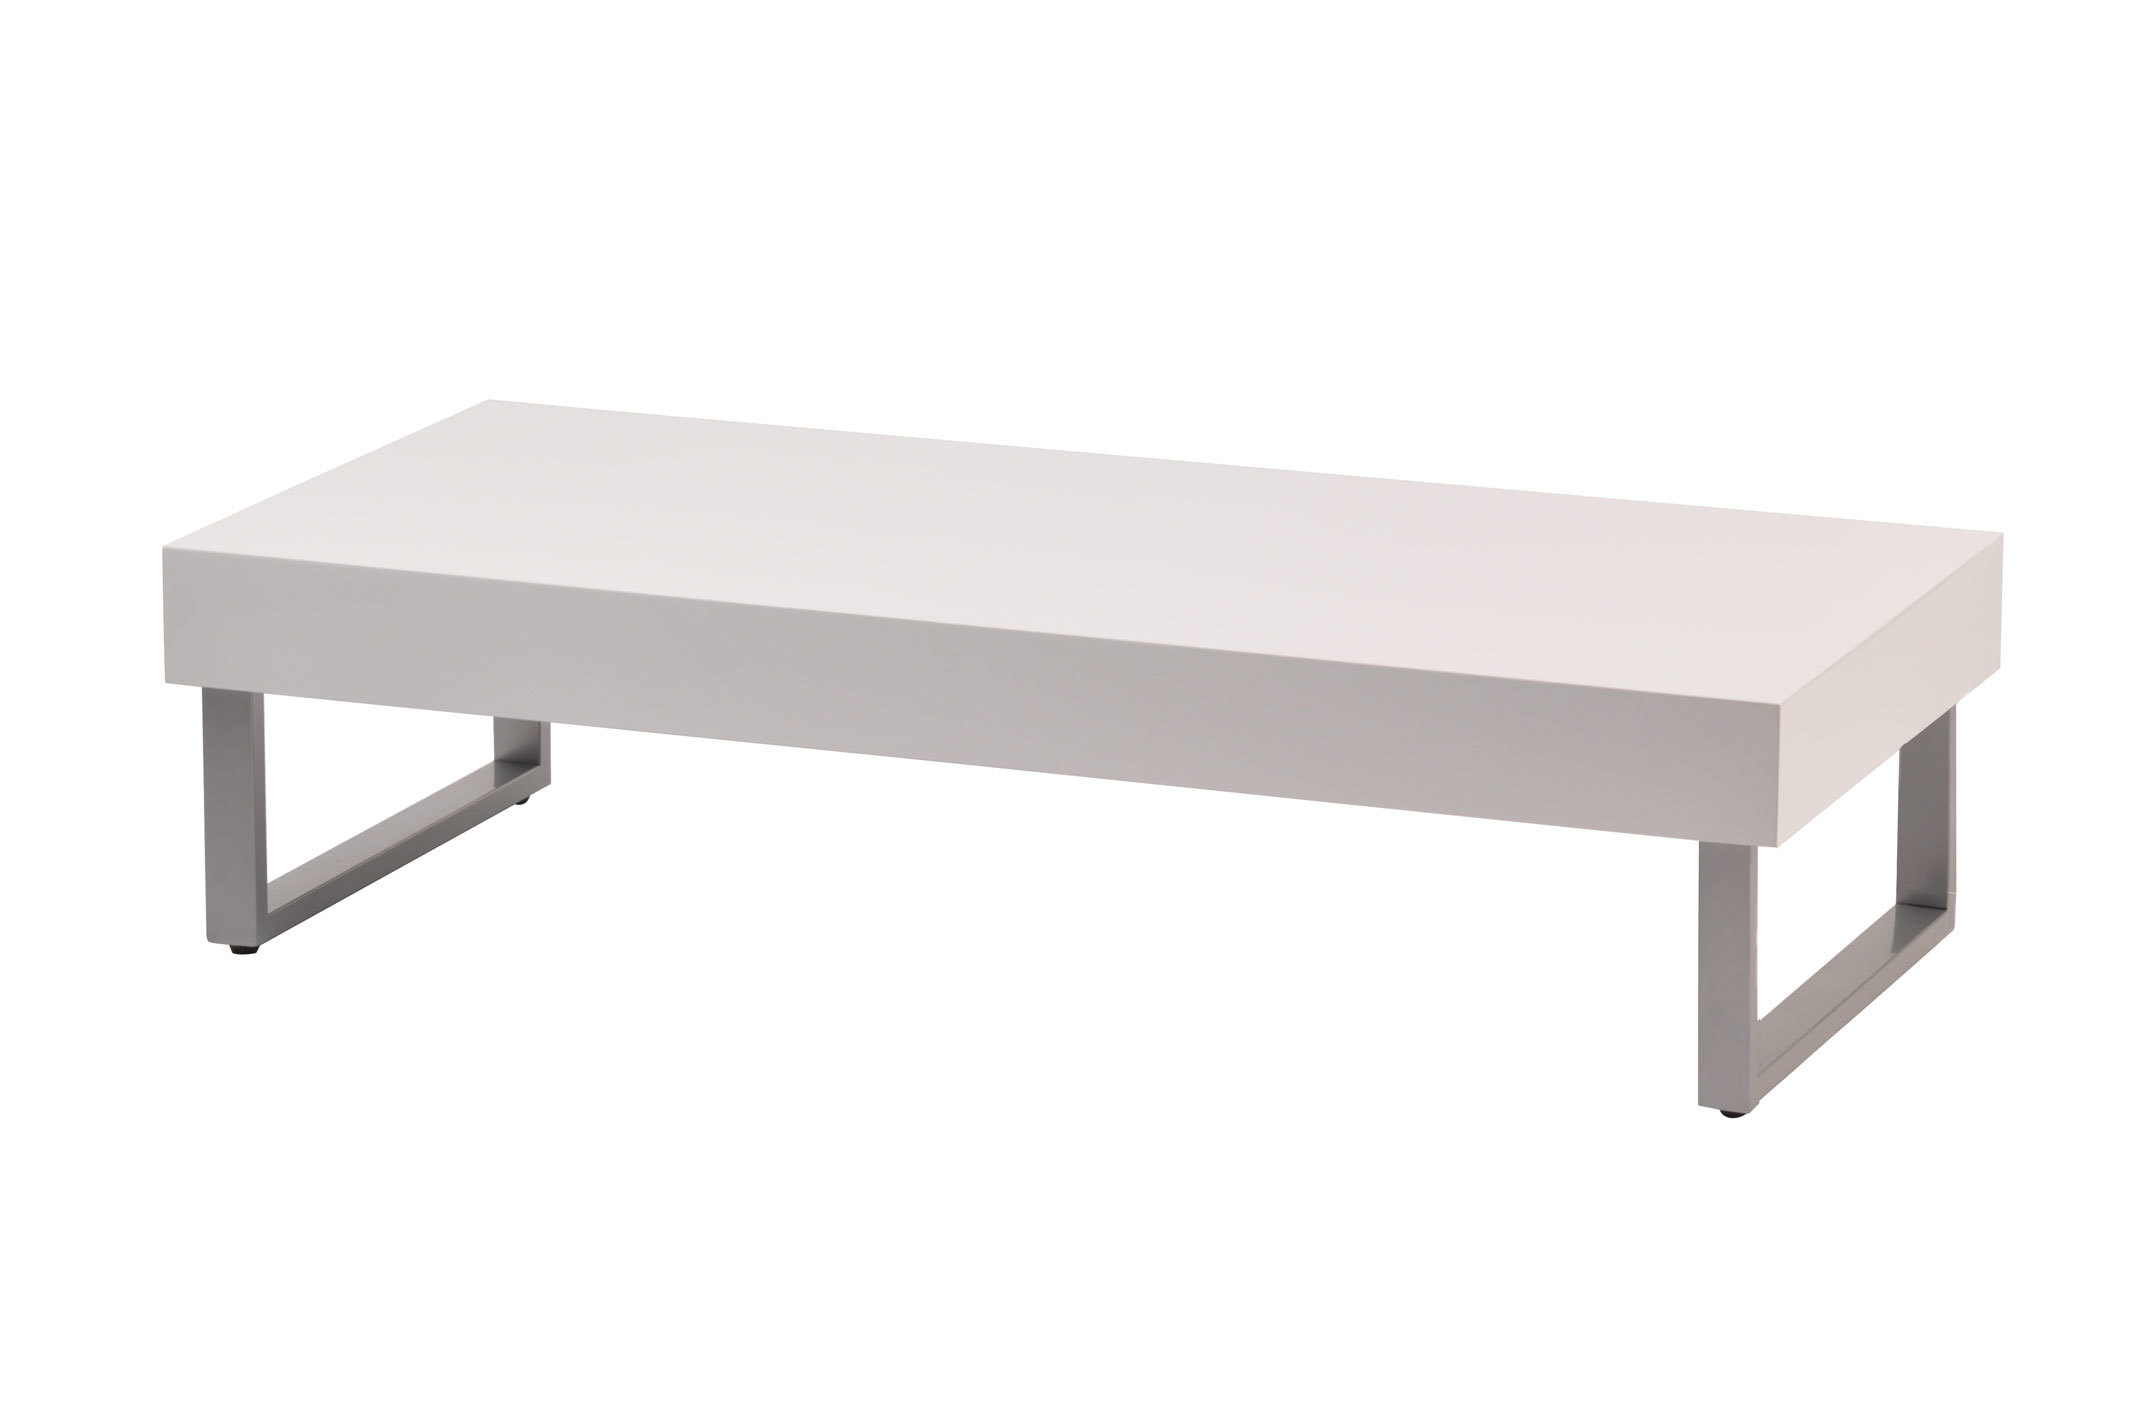 Table basse blanche laqu e morgan miliboo - Table basse gigogne blanche ...